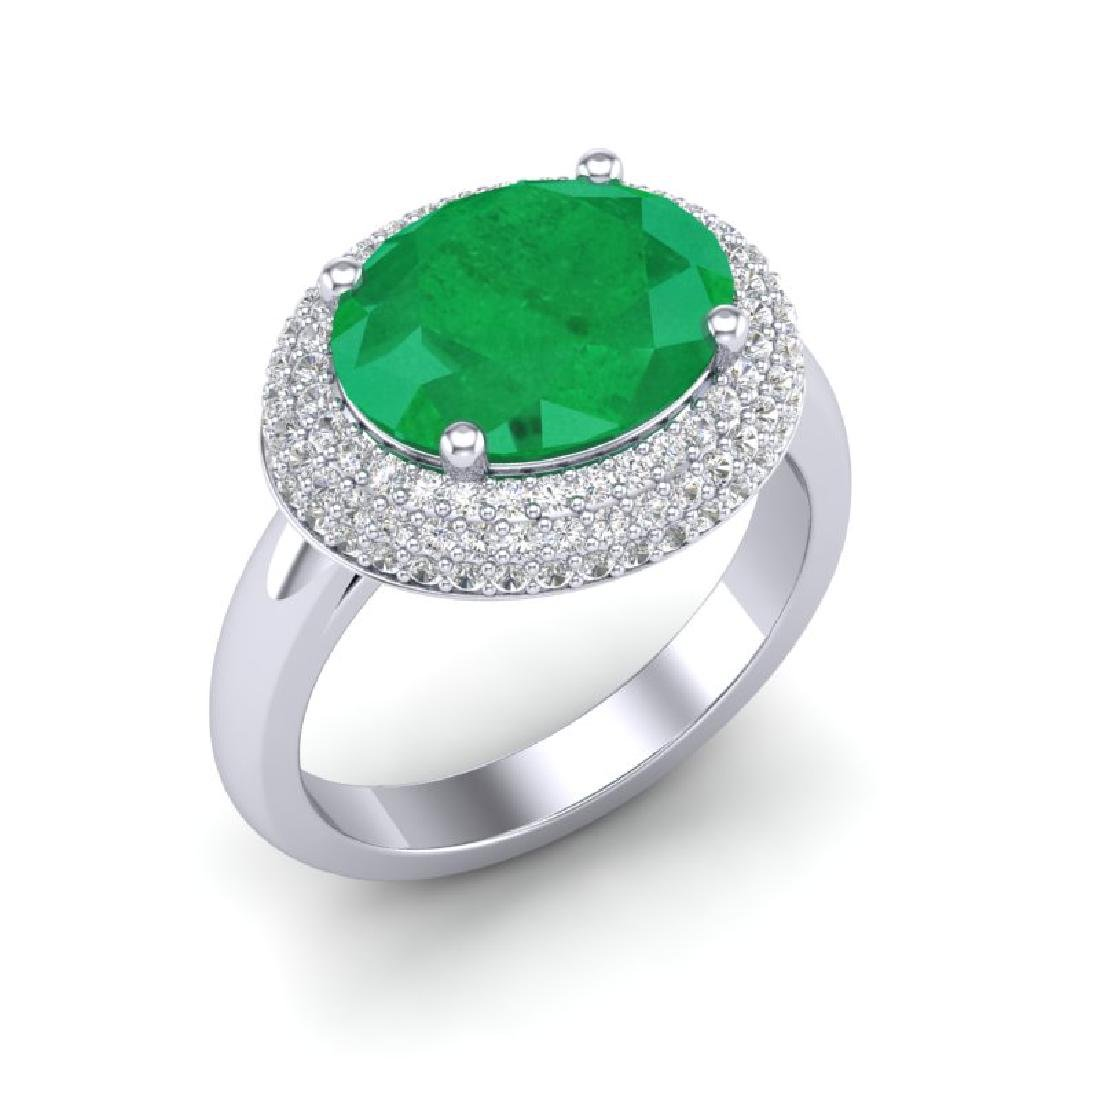 4.50 CTW Emerald & Micro Pave VS/SI Diamond Ring 18K